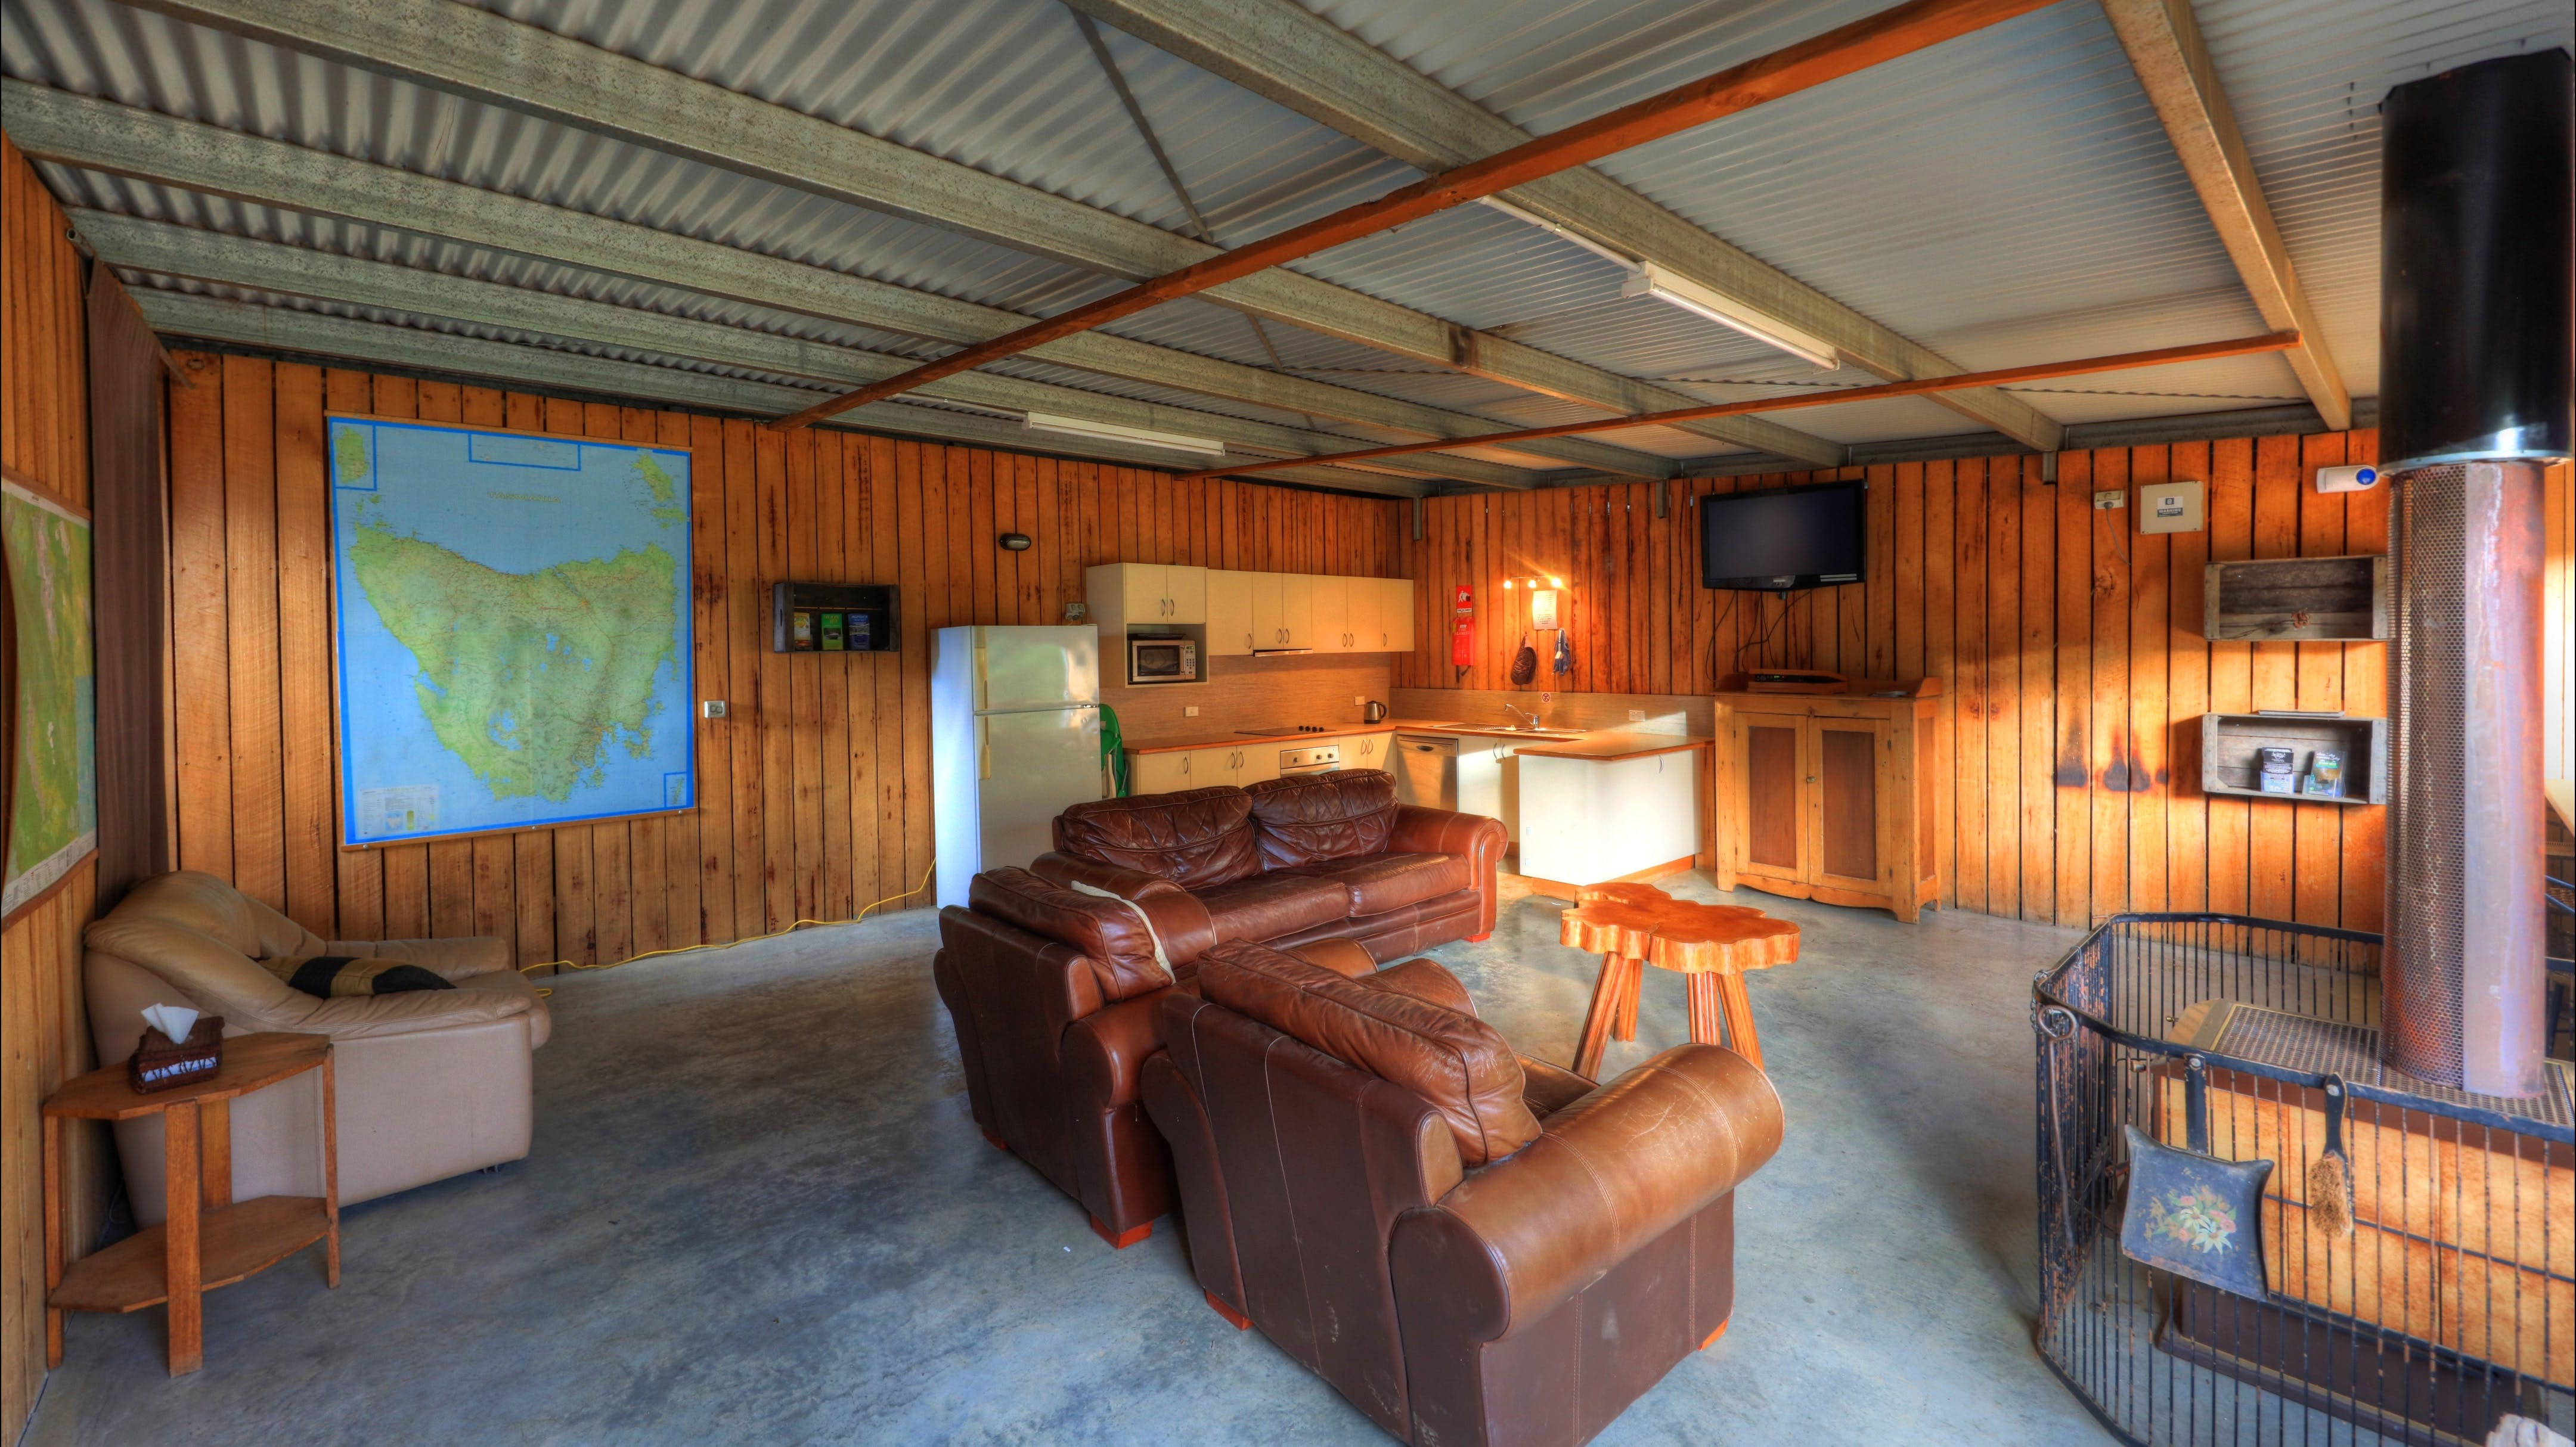 Rivers Edge Wilderness Camping - Accommodation in Surfers Paradise